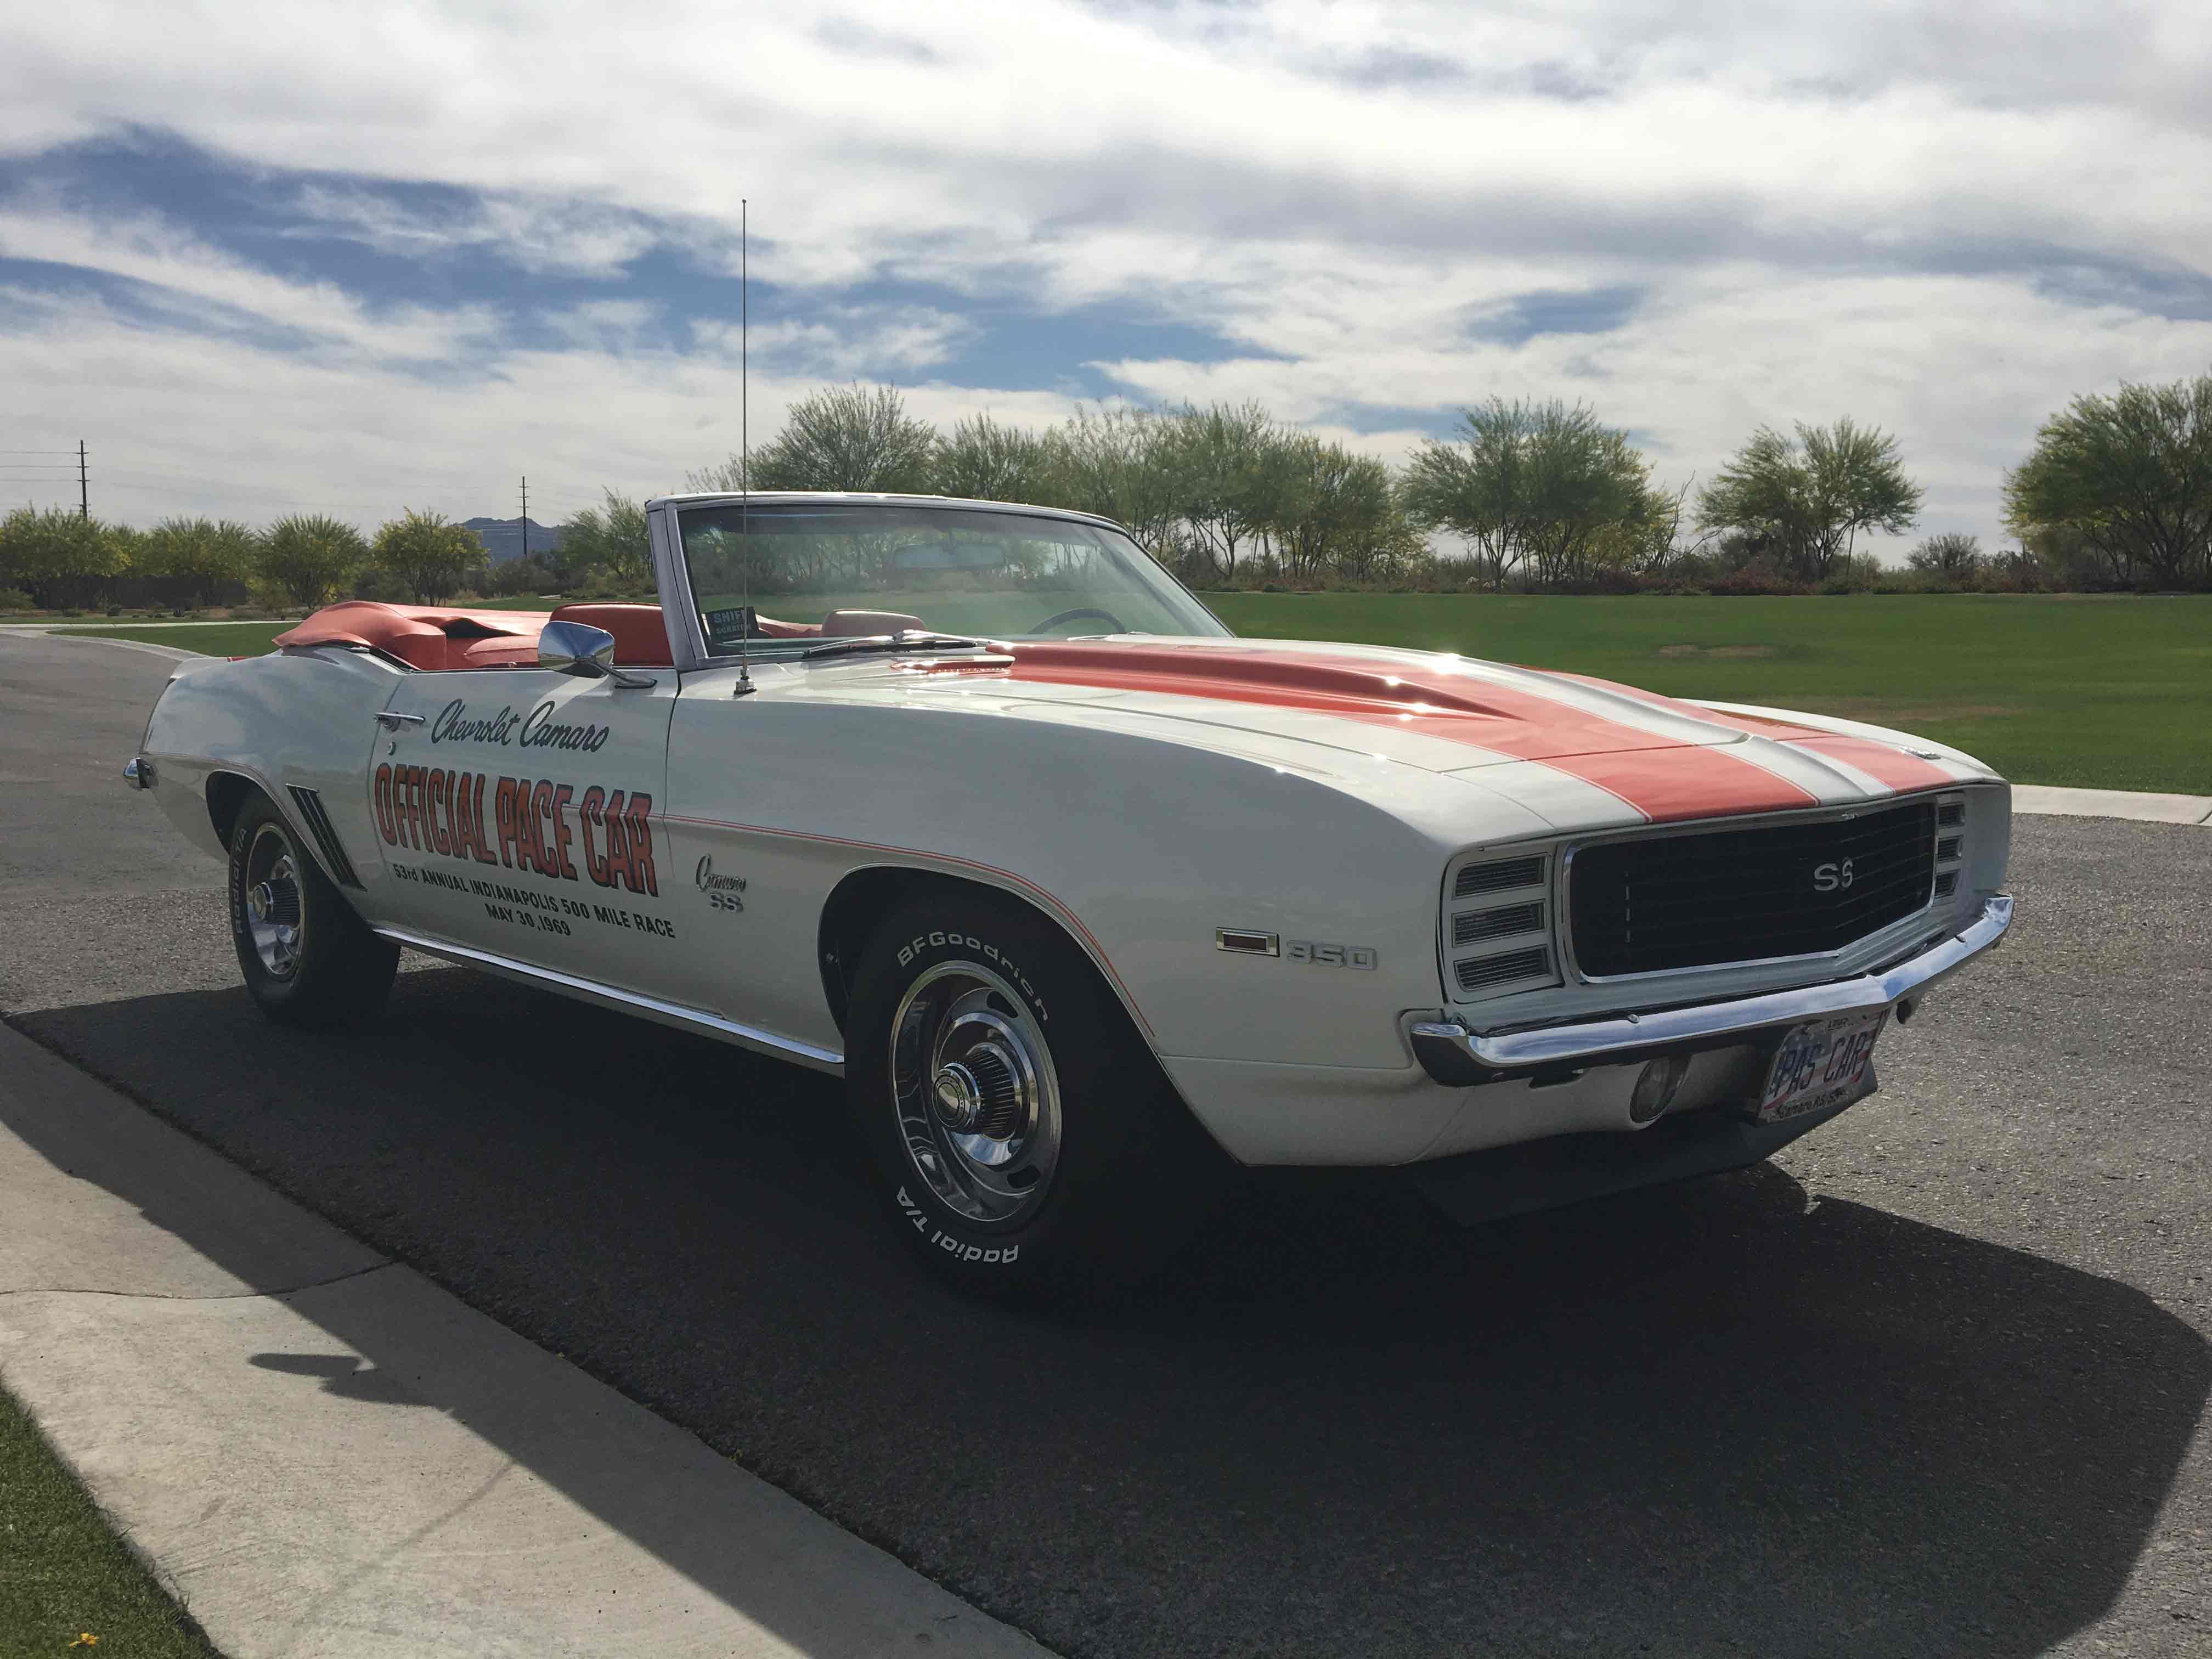 Camaro Ss 1969 >> 1969 Camaro SS / RS Indy Pace Car - Alpio's At Troon